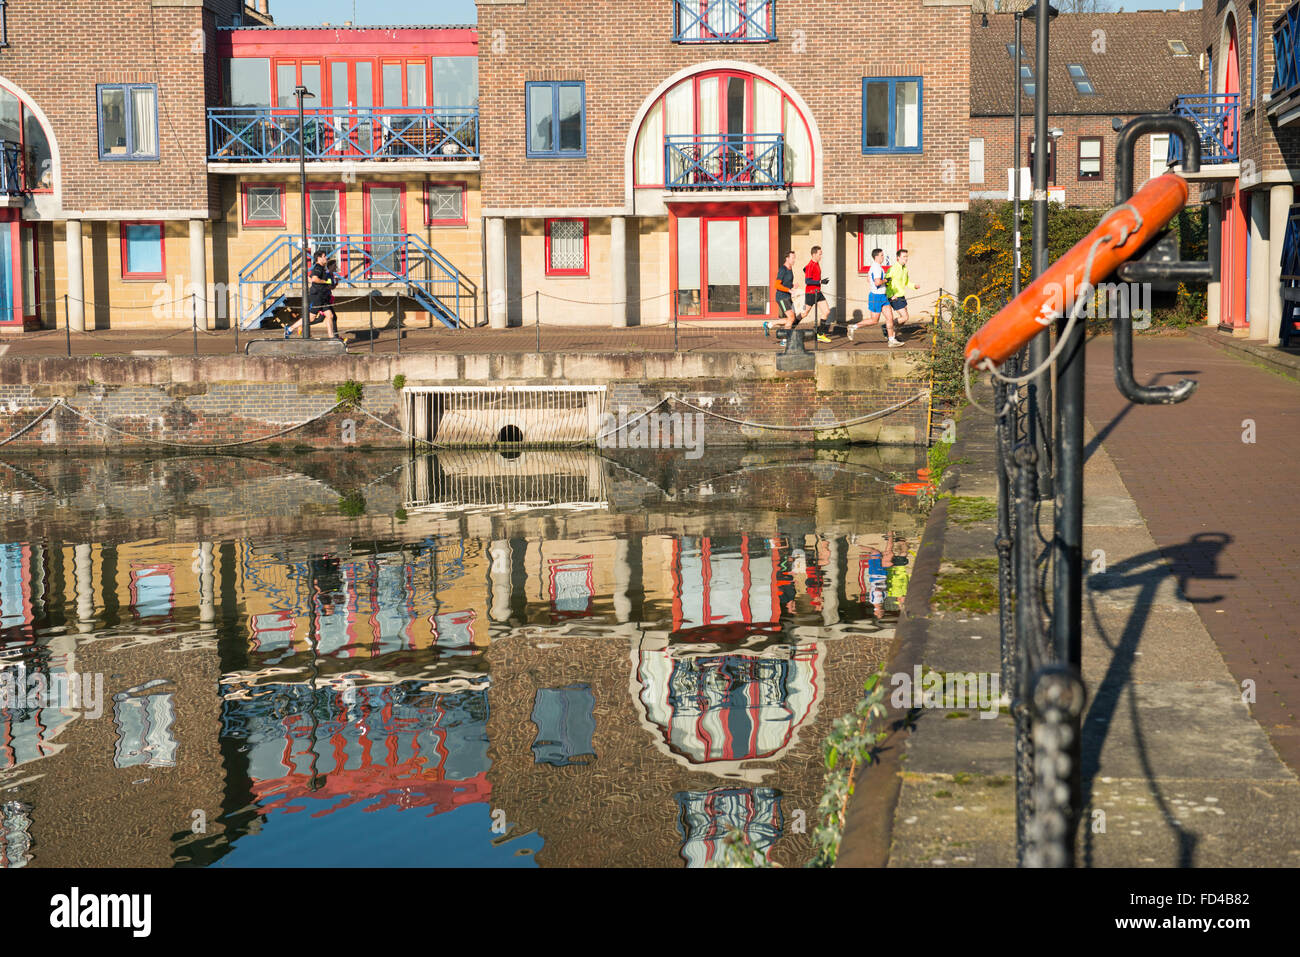 London Docks East End Wapping Shadwell Basin Entrance life buoy water lifebuoy ring reflection detail dockside scene - Stock Image